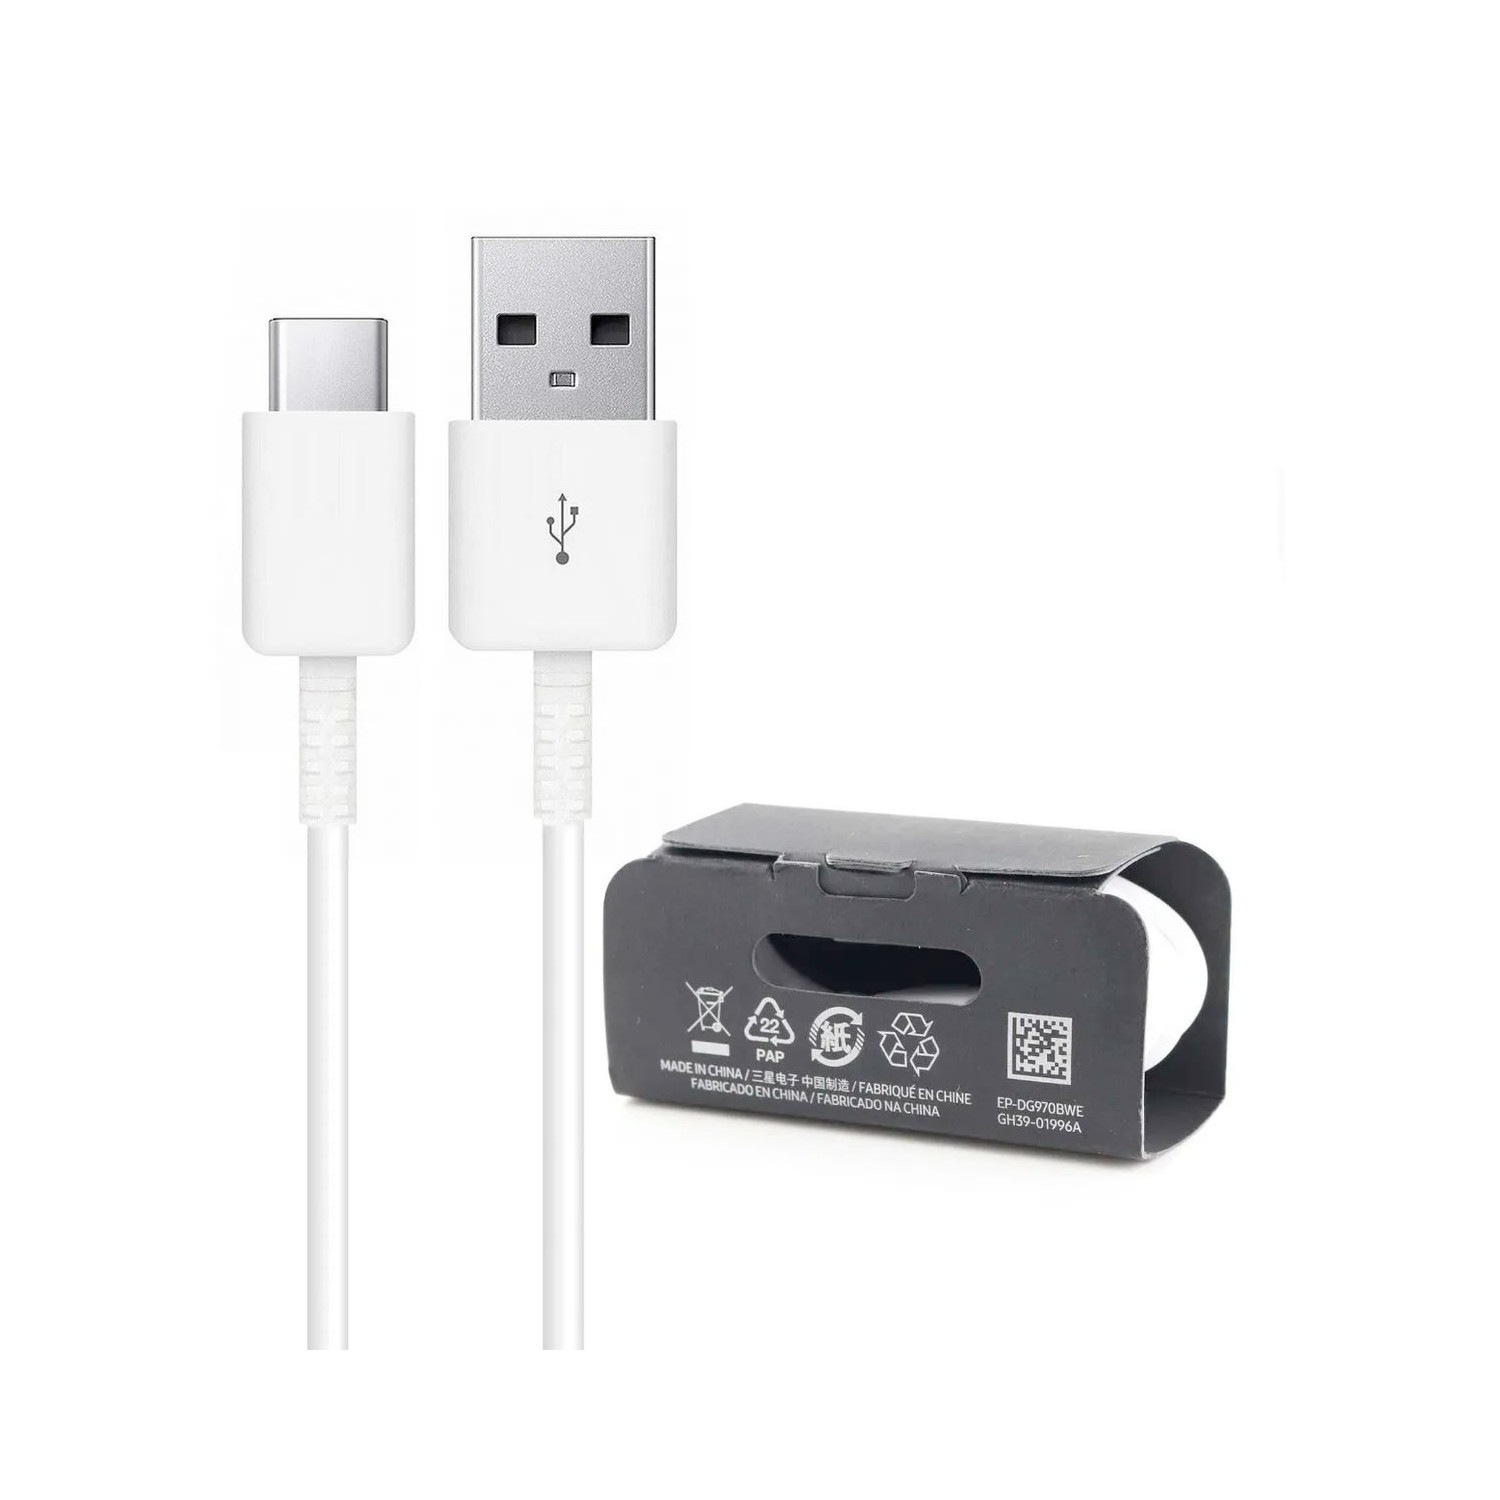 DATA CABLE - SAMSUNG USB-A to USB-C Data Sync and Charge 1m